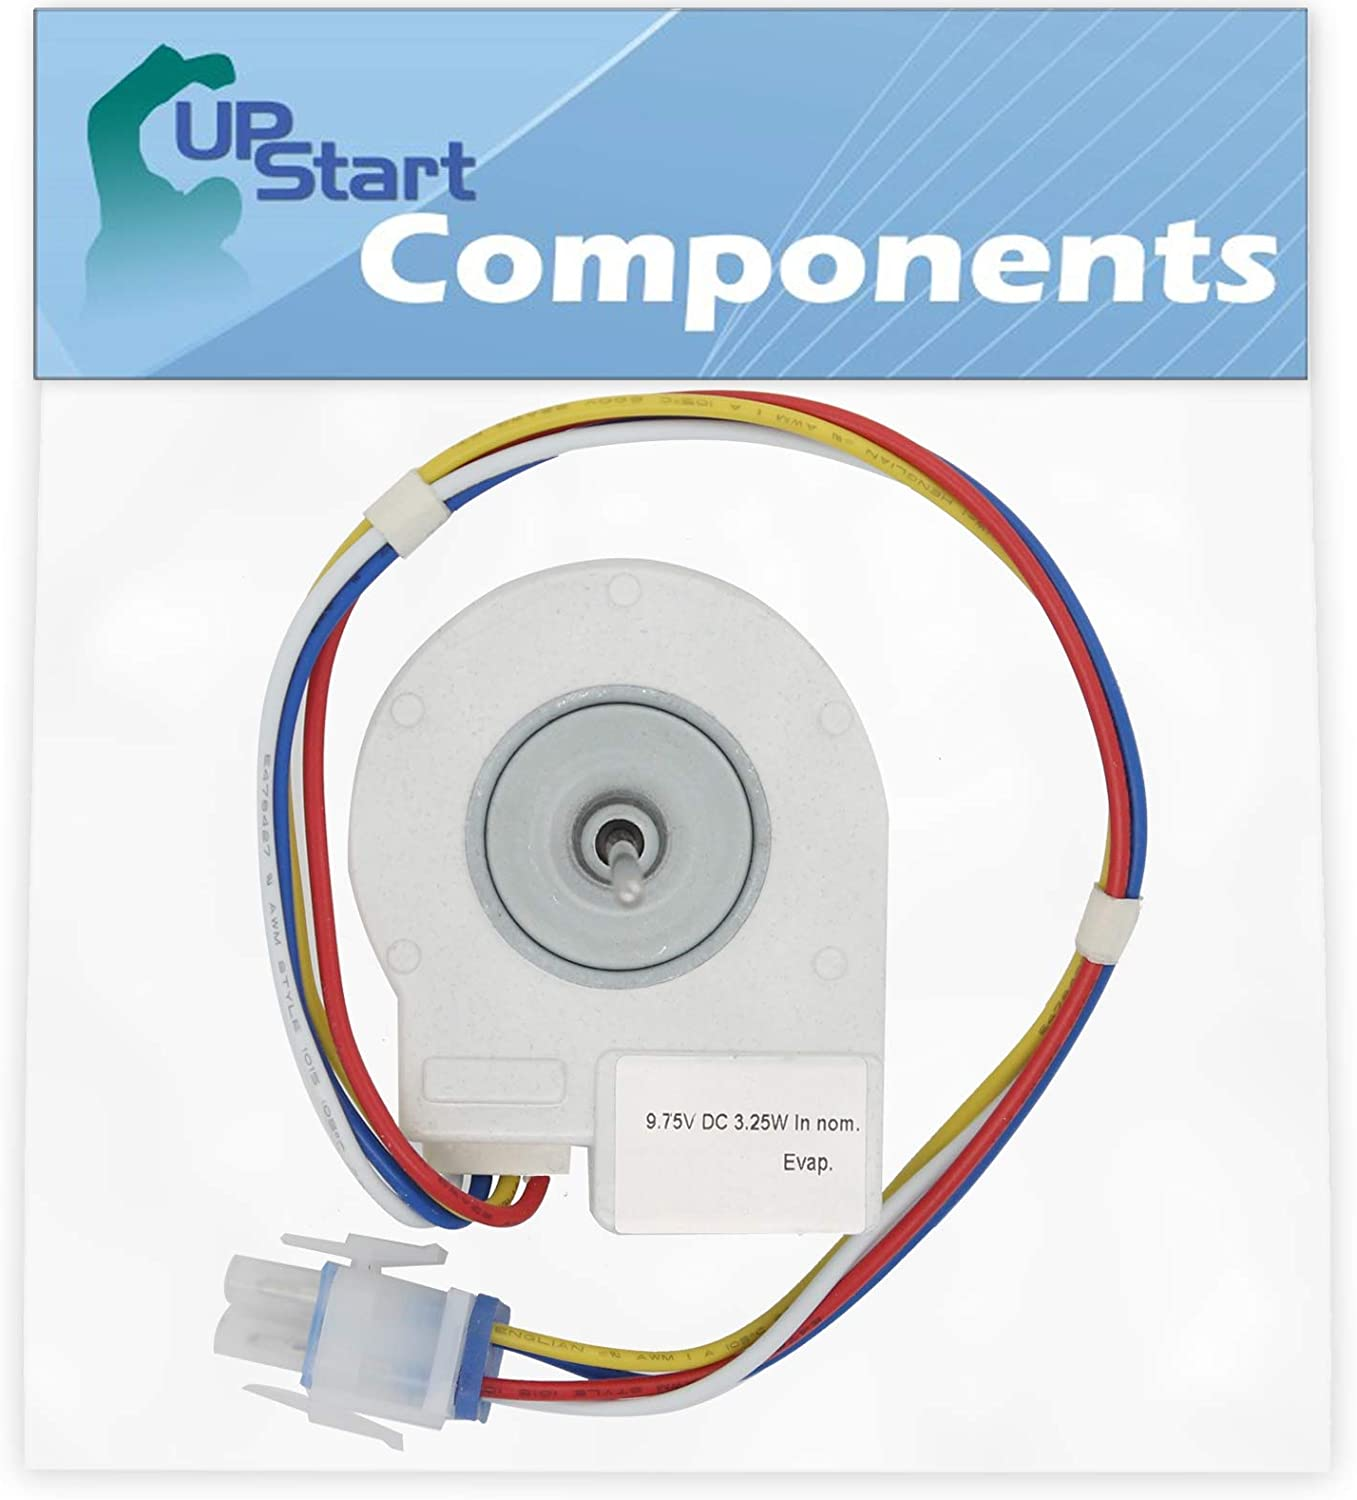 WR60X10185 Evaporator Fan Motor Replacement for General Electric Refrigerators - Compatible with Part Number AP3875639, 1170107, 197D2039P007, 197D2039P008, AH1019114, EA1019114, PS1019114